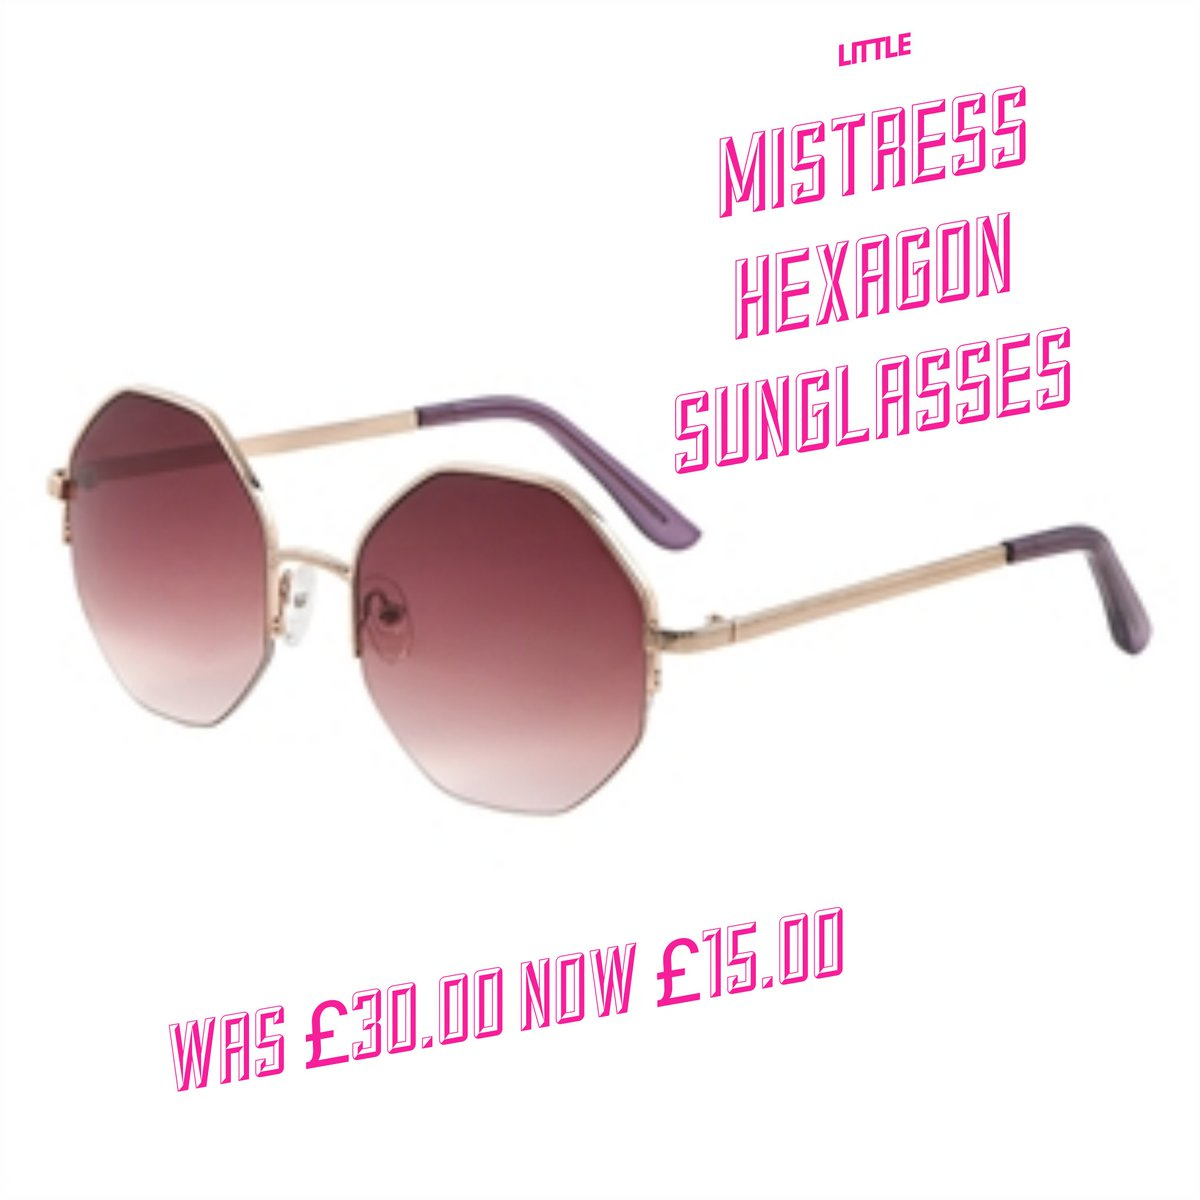 3aec639695 Ombre tinted sunglasses with on-trend hexagon shaped lenses. With Little  Mistress branded case and cloth.White metal alloy.UV Filter category 3.